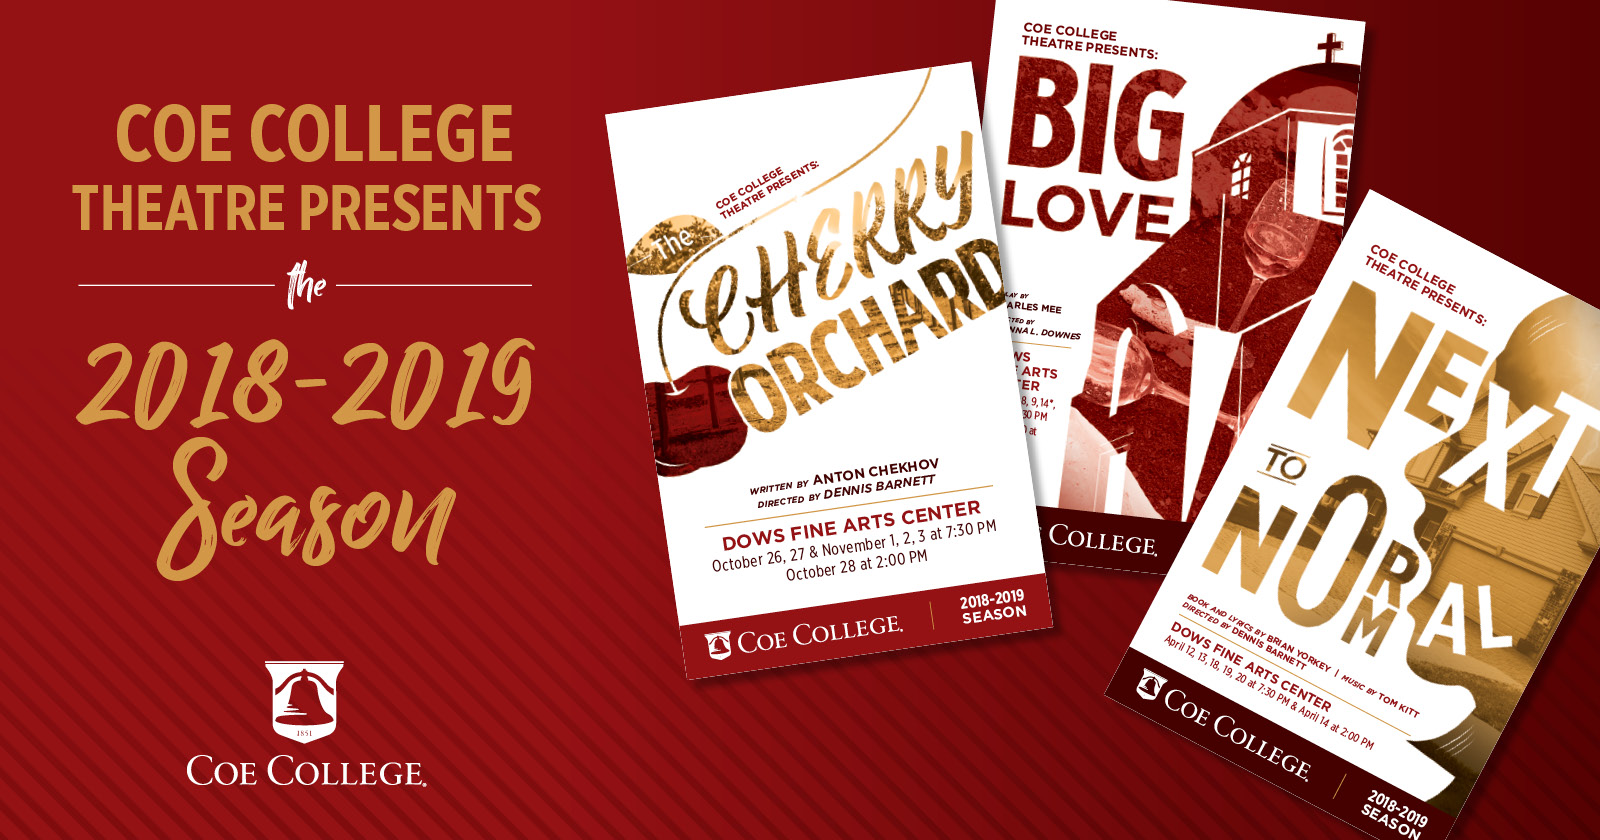 Coe College Theatre presents a tragicomedy, arranged marriage and award-winning musical in its 2018-19 lineup